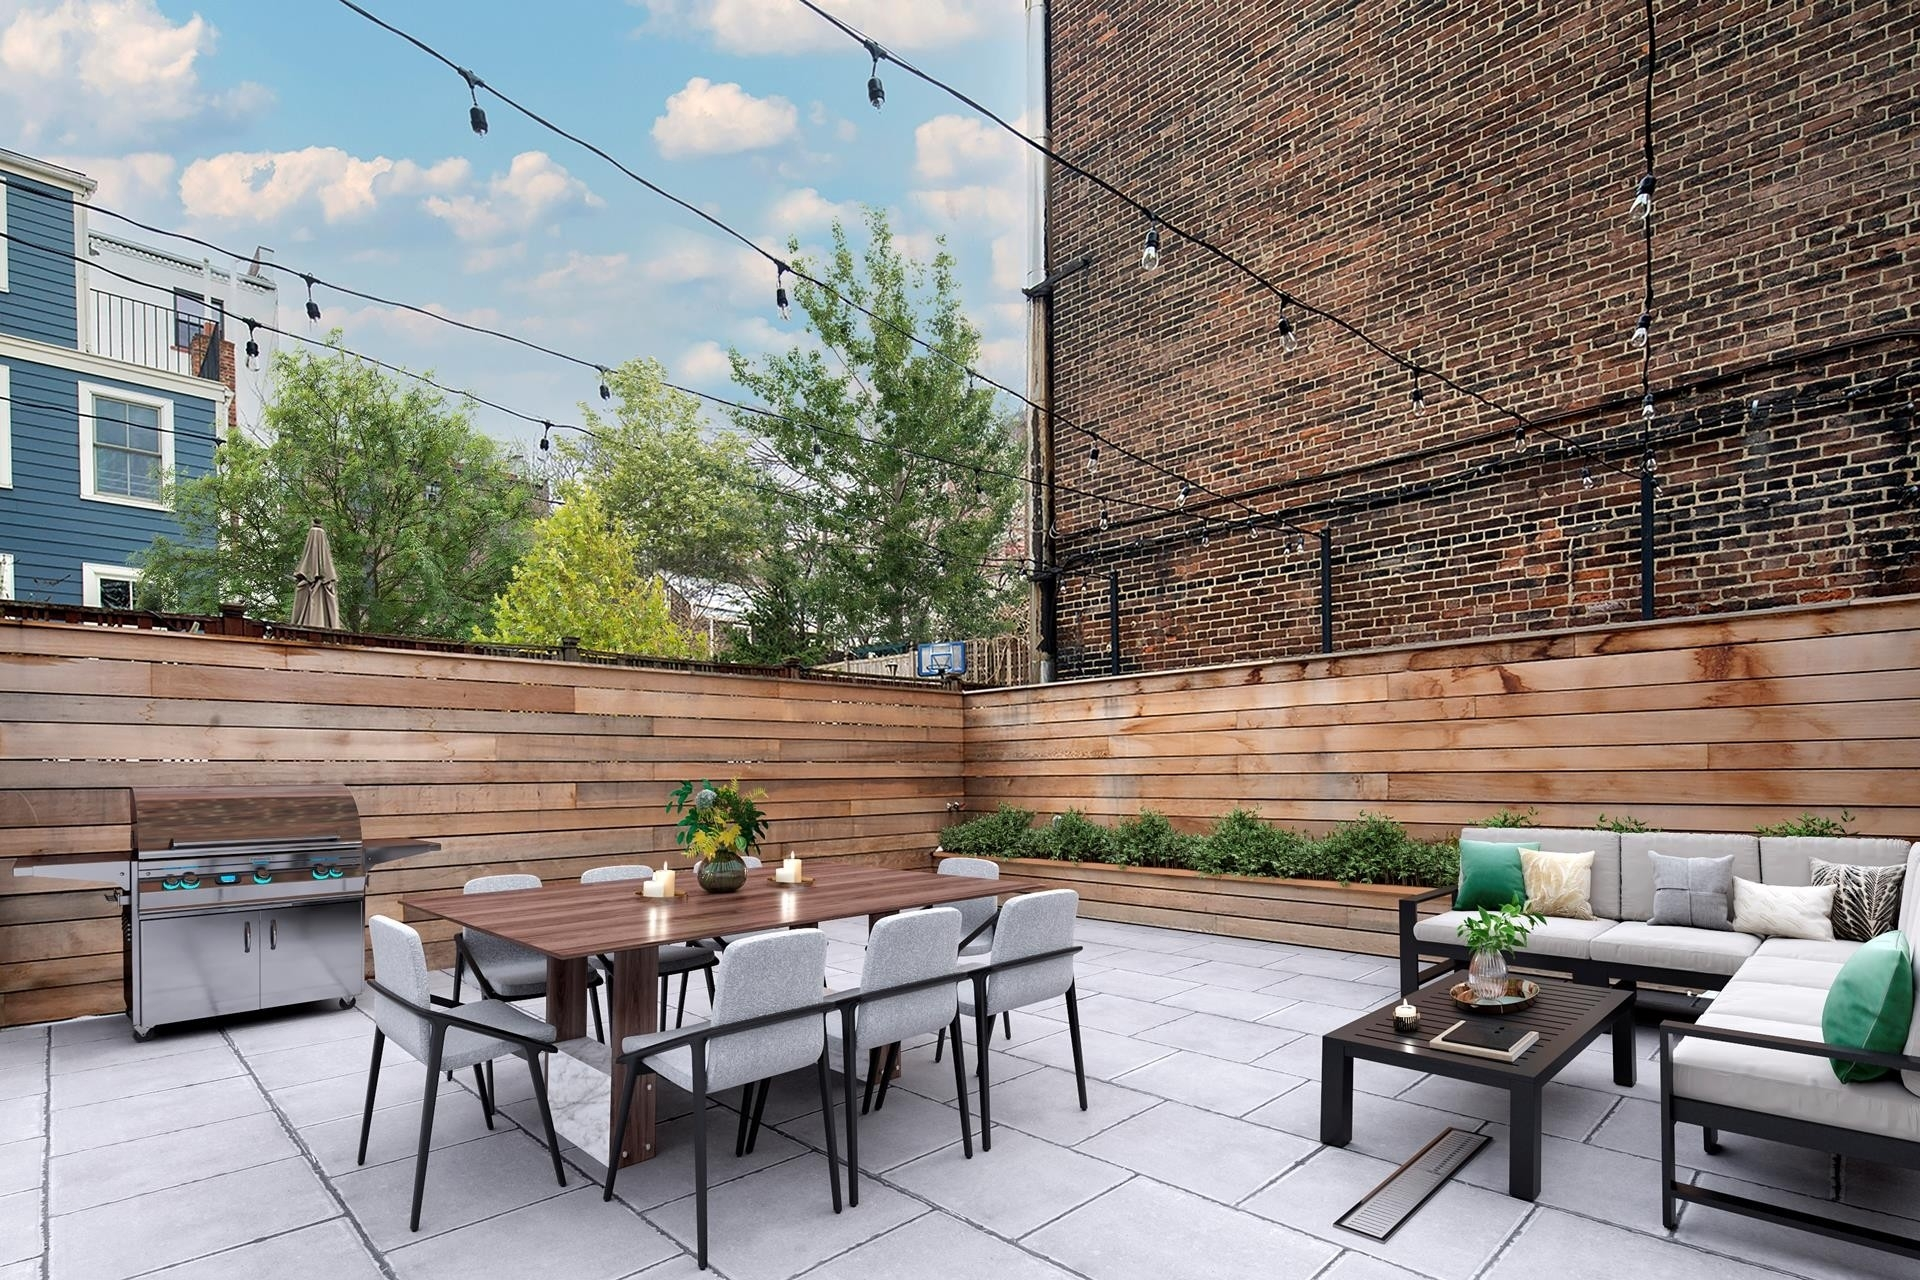 6. Single Family Townhouse for Sale at 50 HICKS ST , TH Brooklyn Heights, Brooklyn, NY 11201